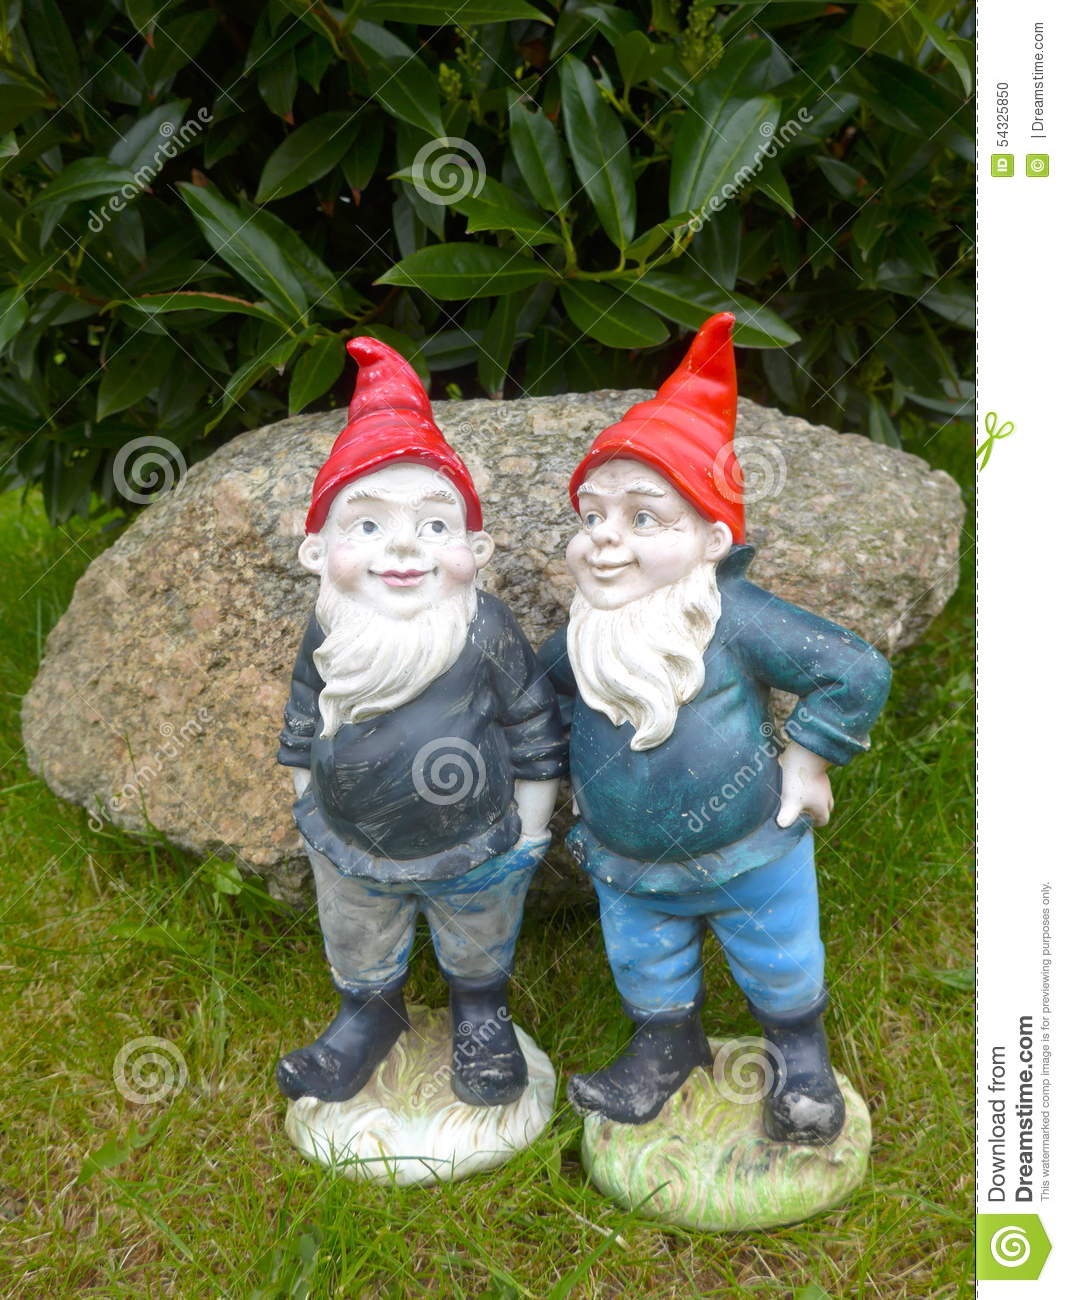 Funny Gnomes: Two Funny Garden Gnomes Stock Photo. Image Of Character